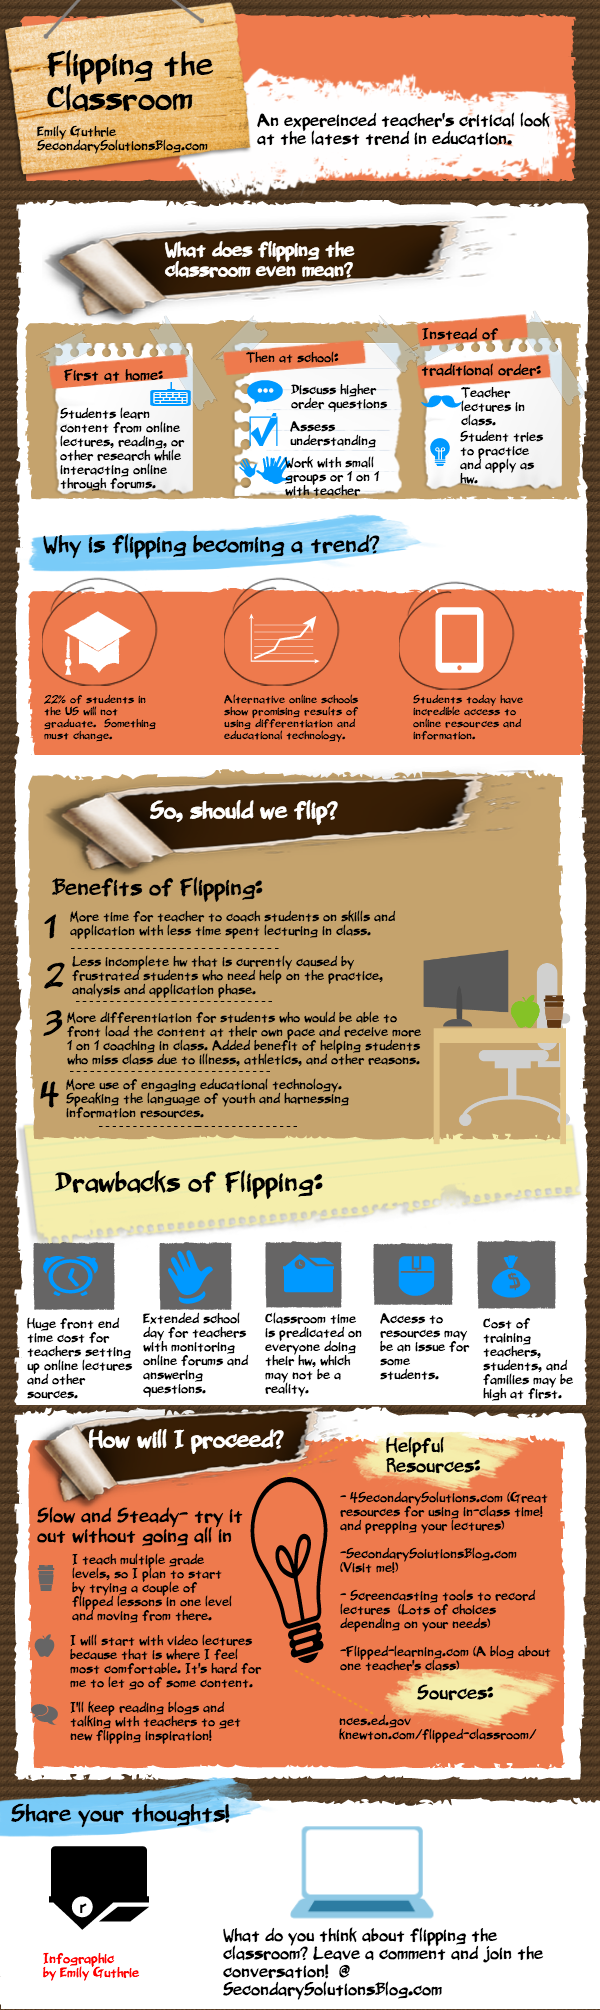 A look at flipping the classroom.  Are you in to it, out of it, or still trying to define it?  Come join the conversation!  #flippingtheclassroom